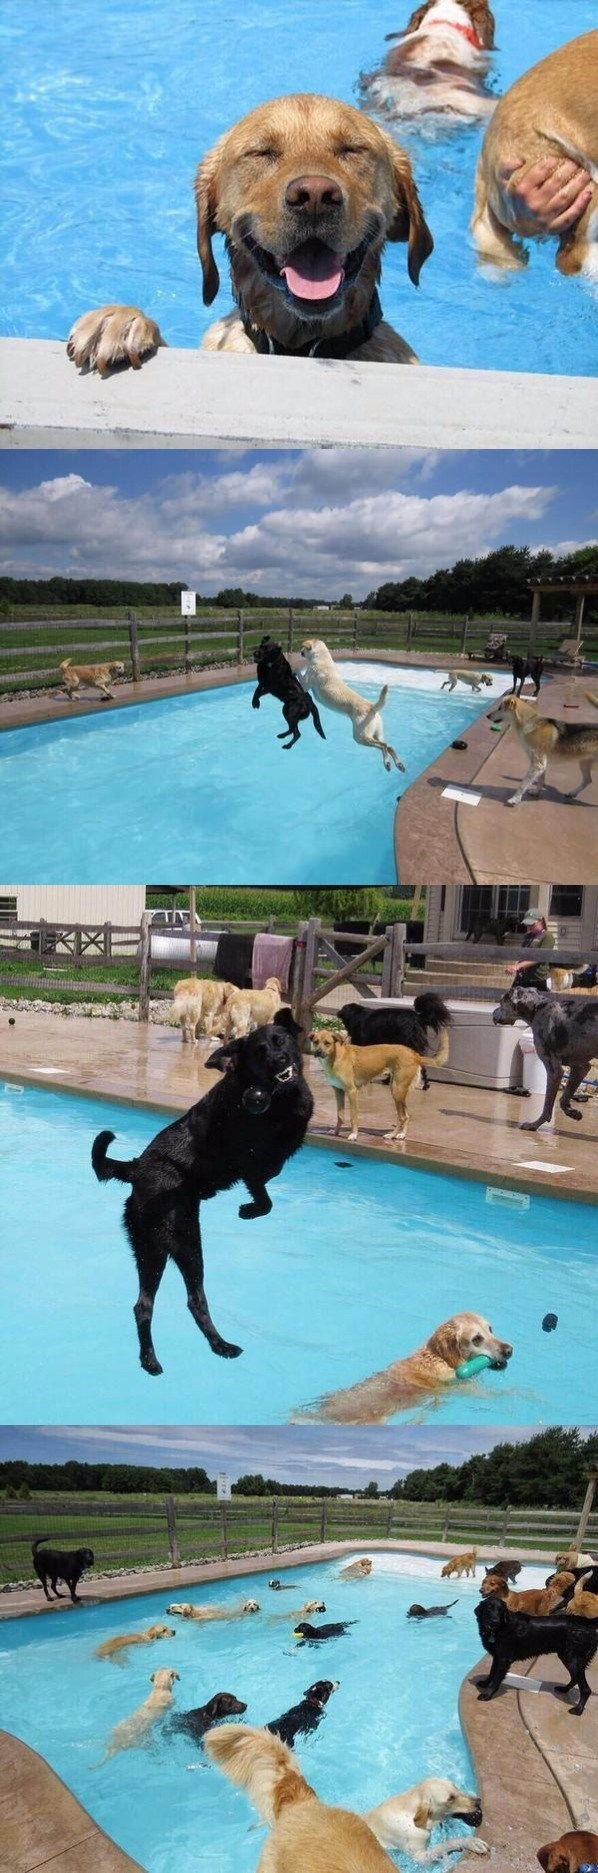 Awesome party for dogs by the pool. These cute dogs are having fun.